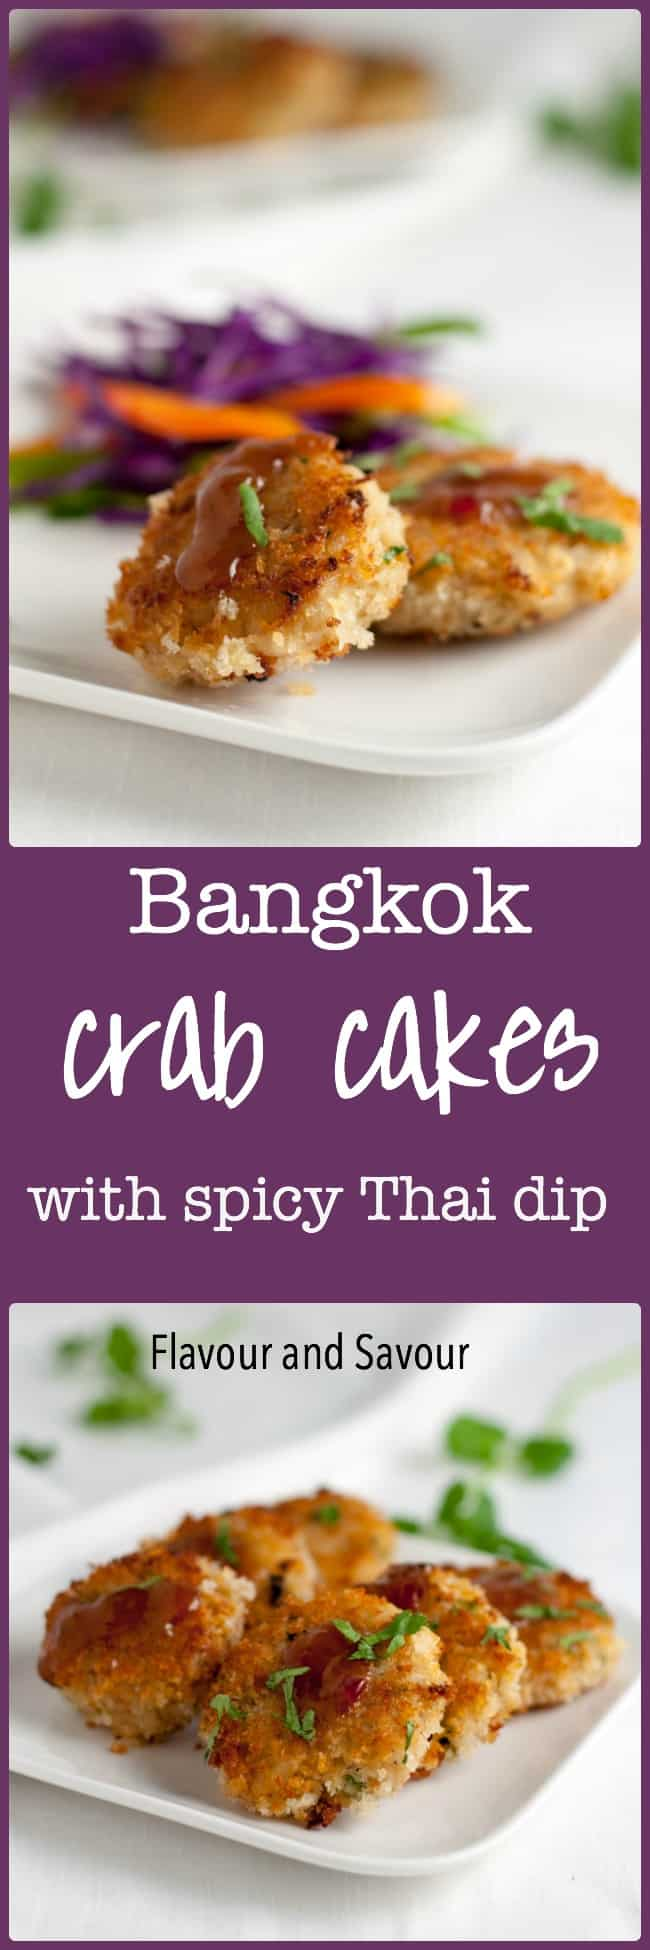 Bangkok Crab Cakes with Spicy Thai Dip. All your favourite Thai flavours in one little bite! They're sweet, salty, sour, and spicy. Perfect accompaniment to a Thai meal.